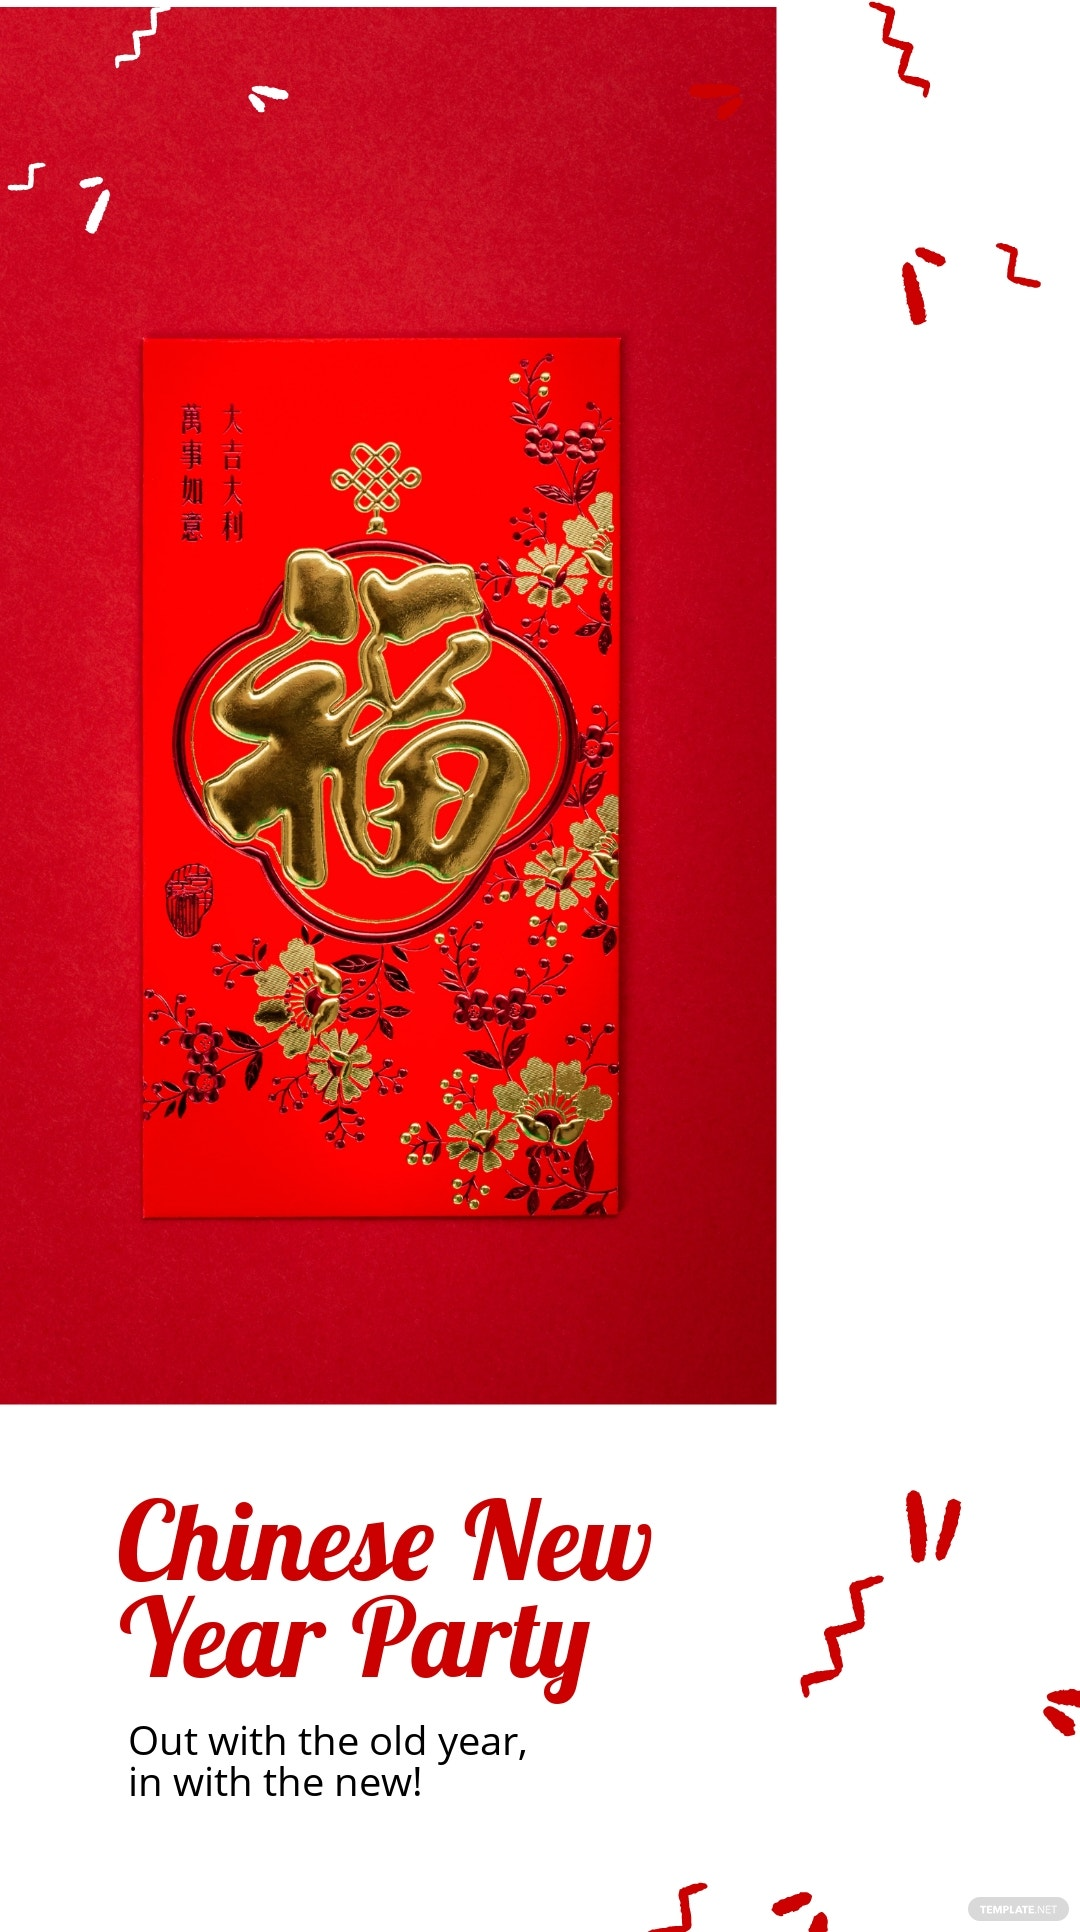 Chinese New Year Party Instagram Story Template 3.jpe